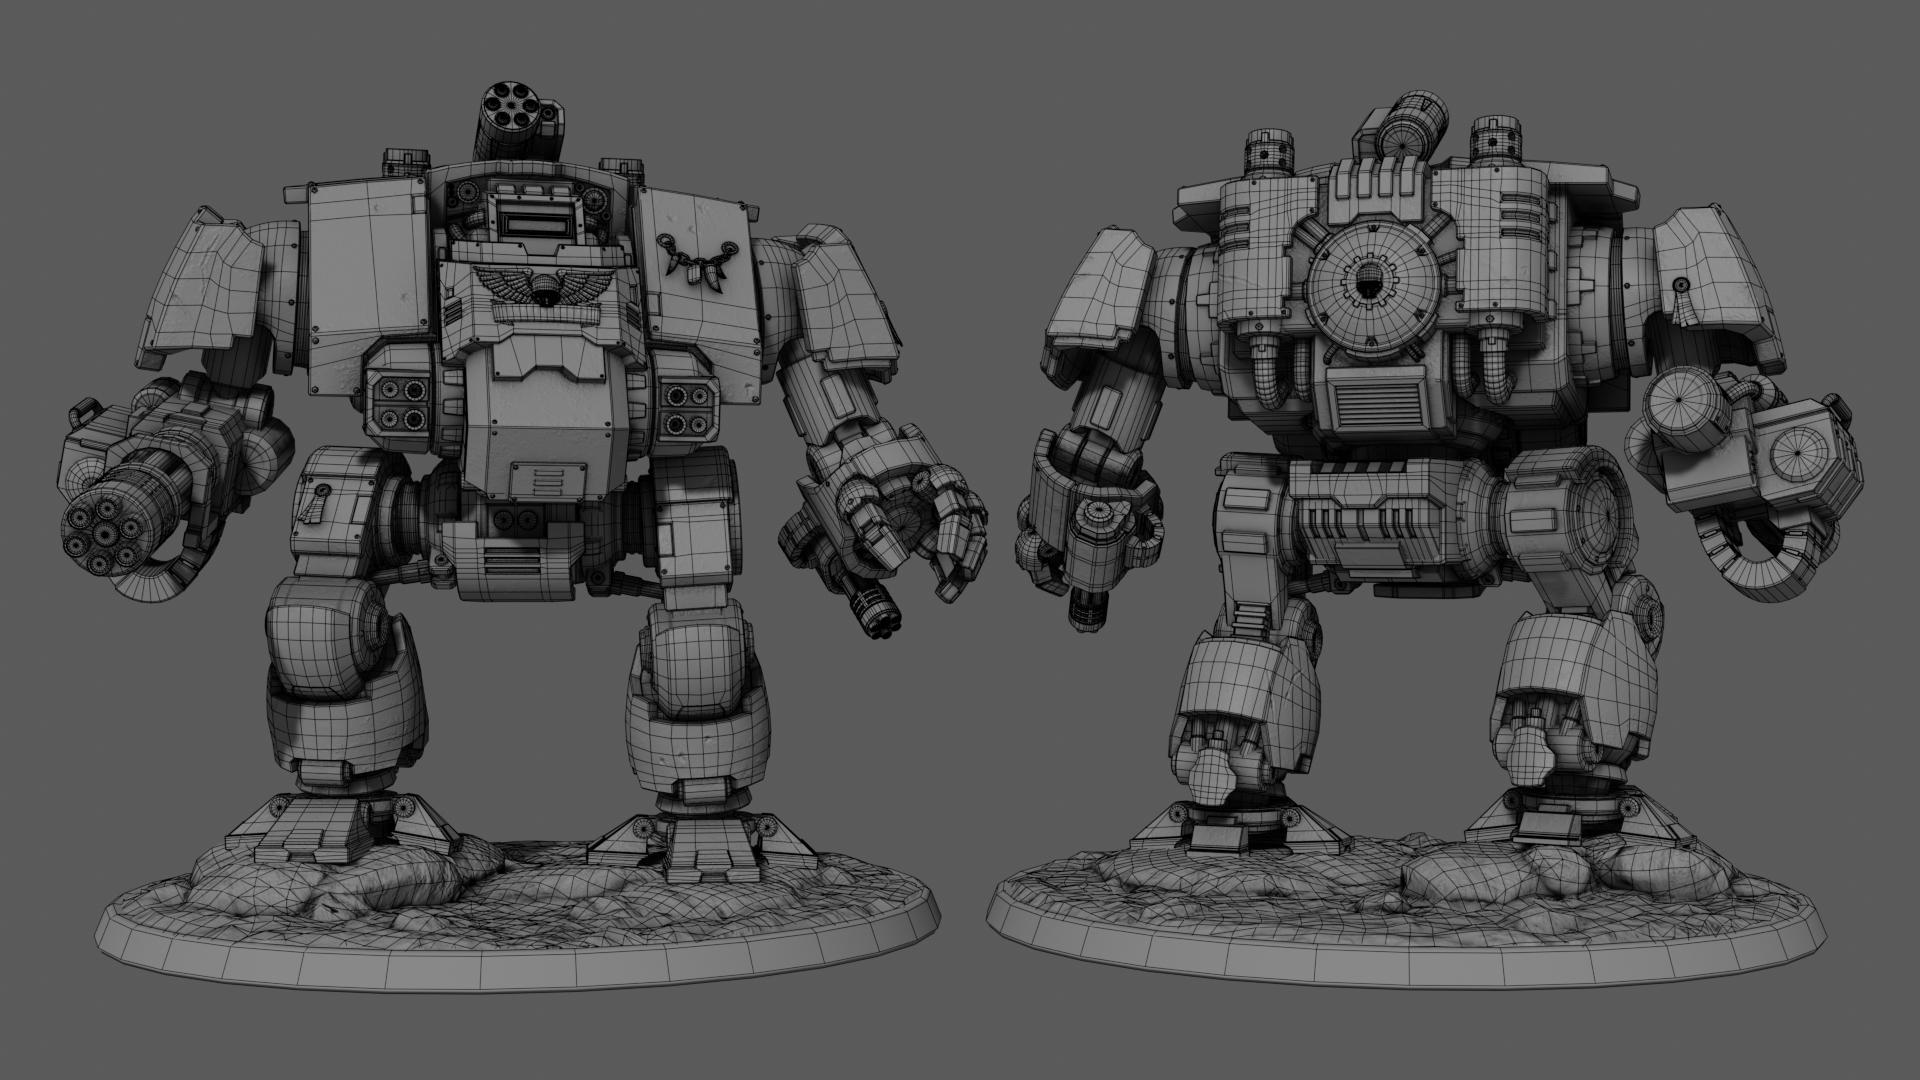 dreadnought redemptor wireframe